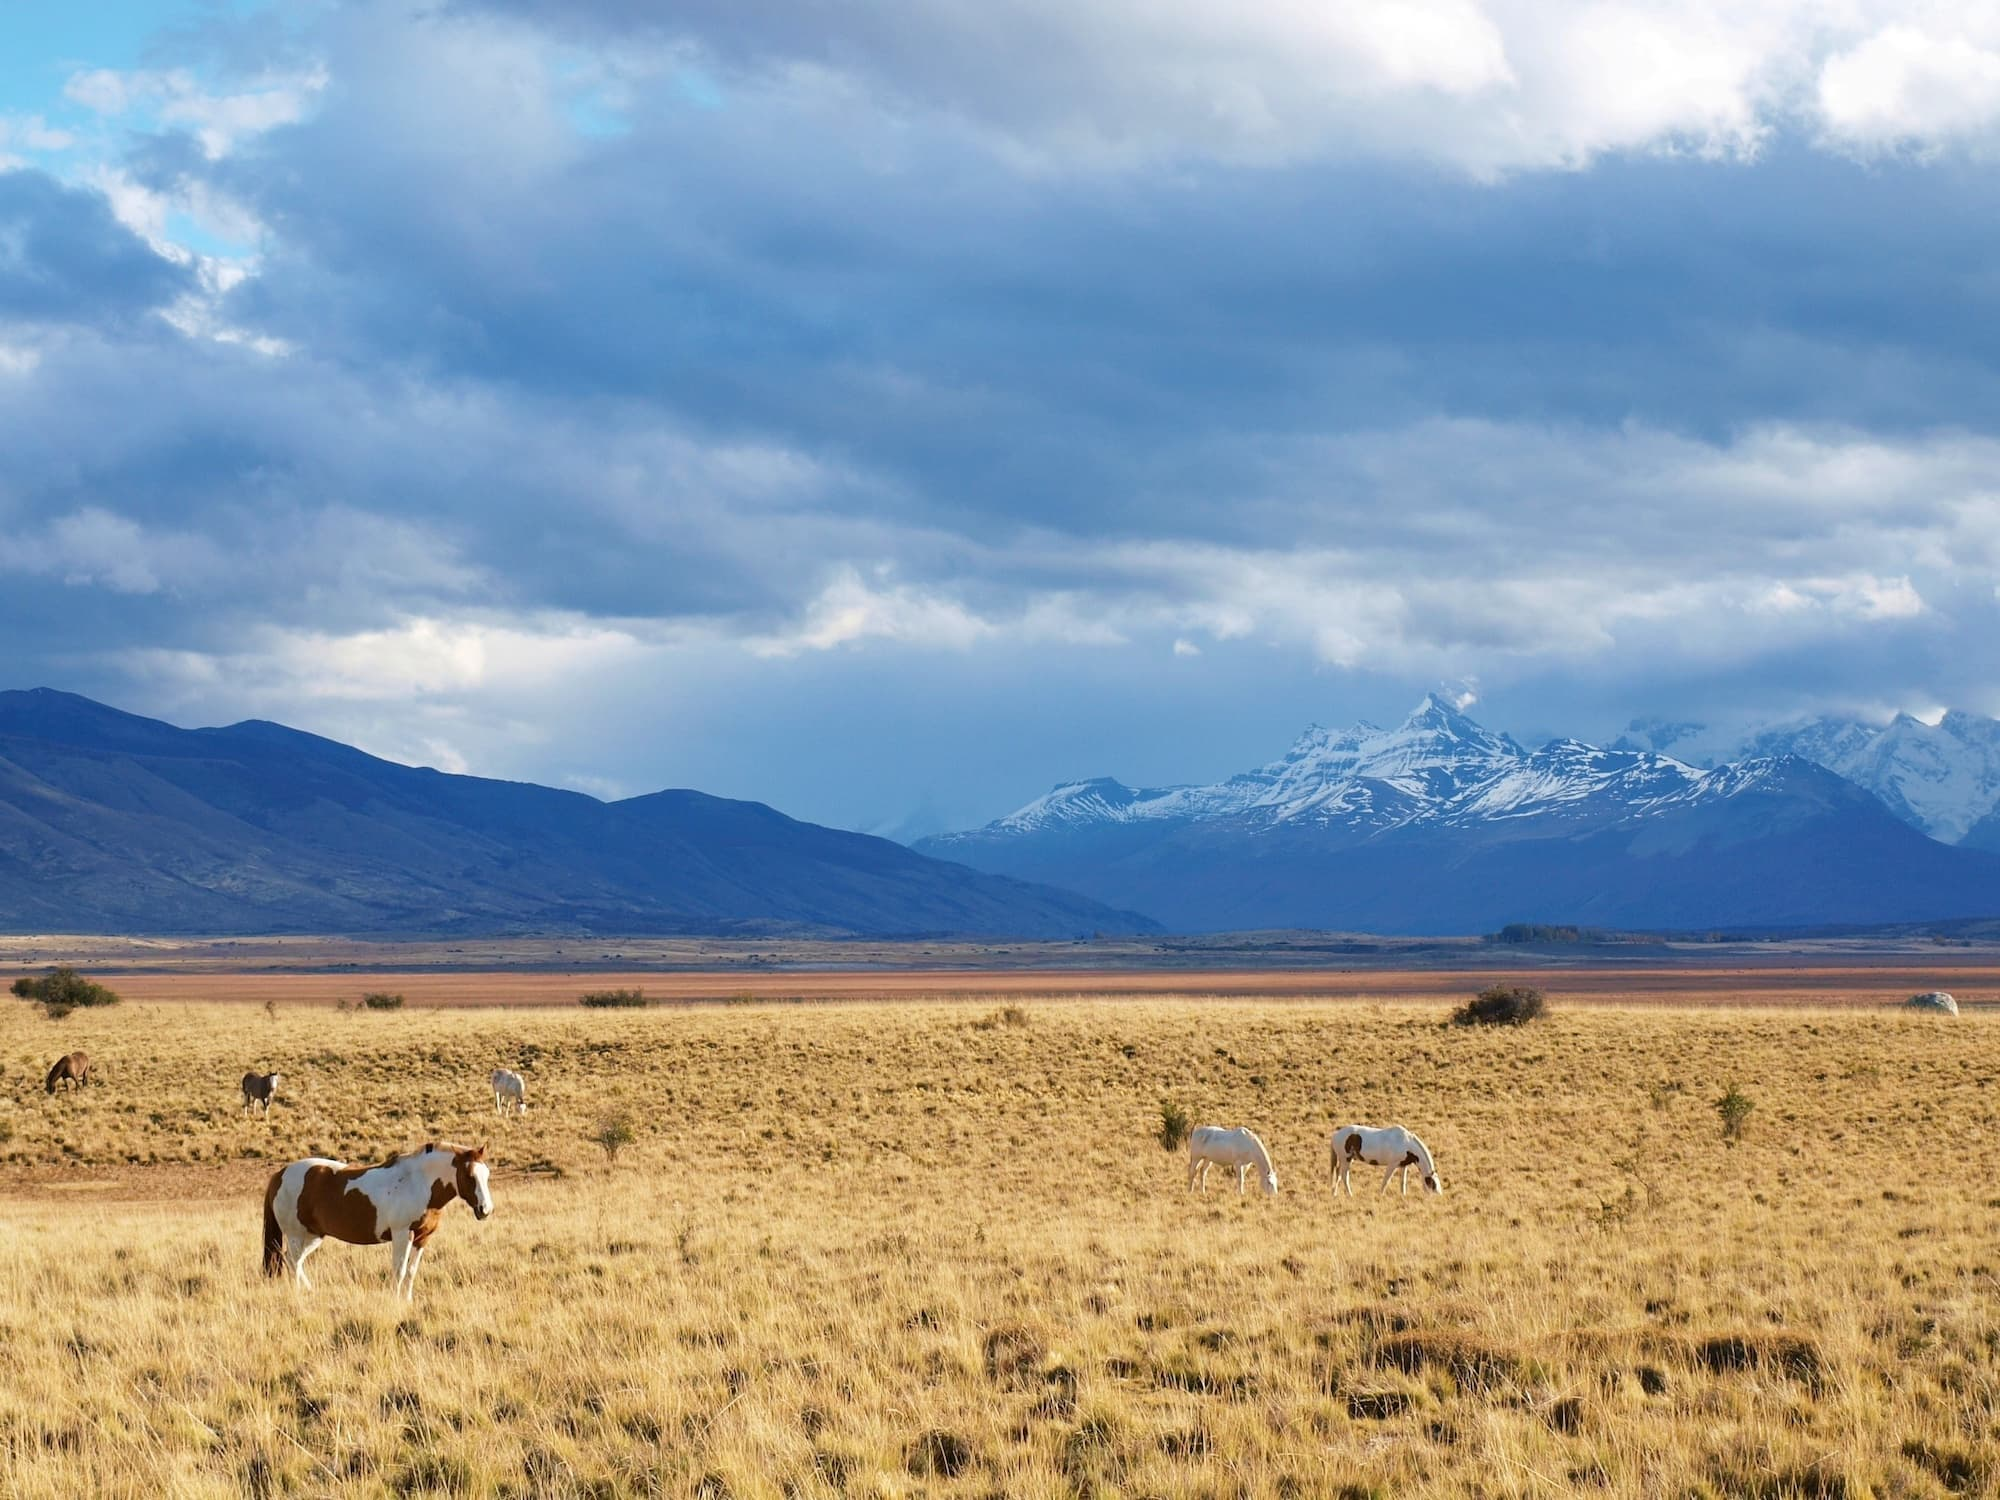 10 Things to Do in El Calafate, Argentina